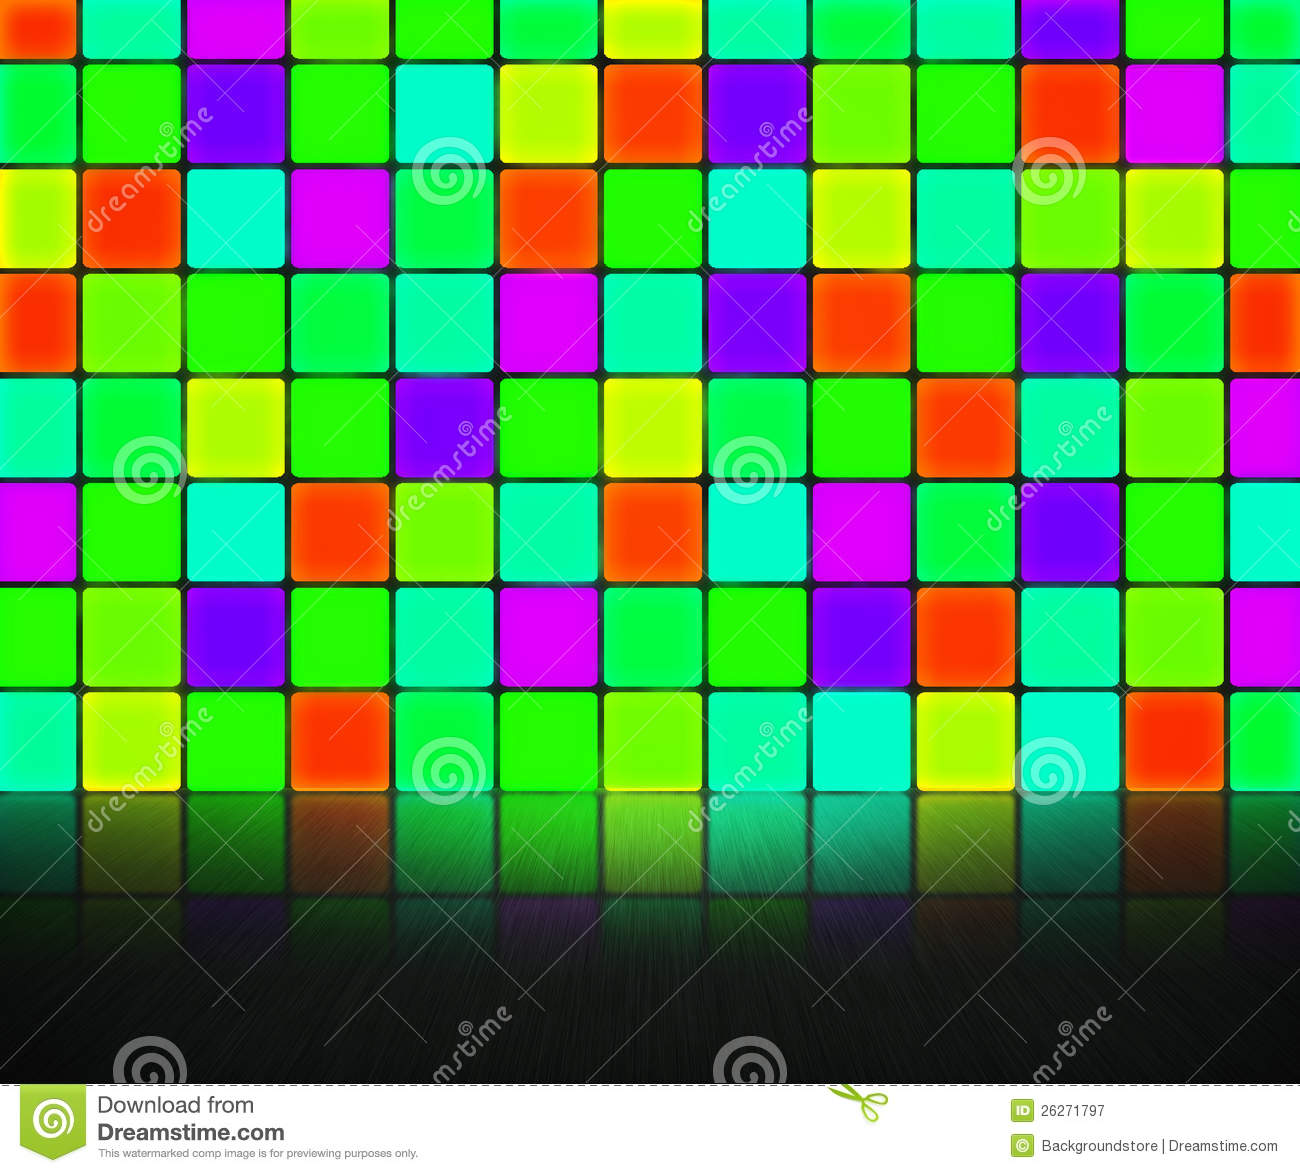 Disco lights on a colorful wall wallpaper - Digital Art wallpapers ...